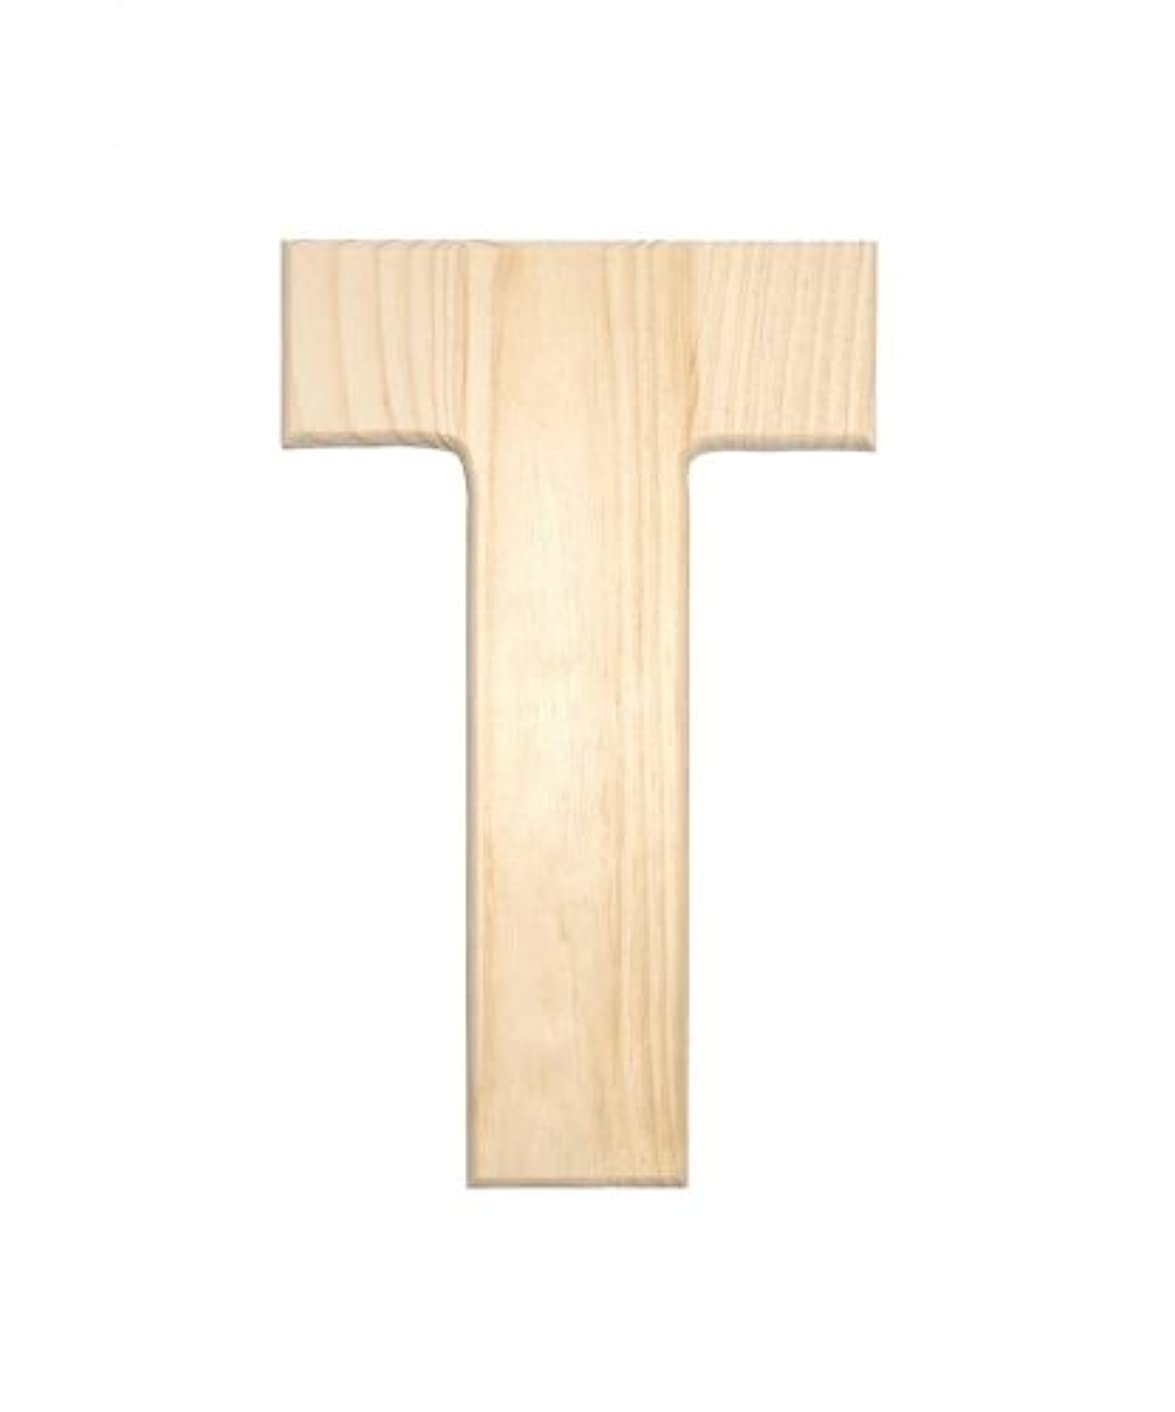 Darice 0993-T Natural Unfinished Wood Letter T, 12-Inch